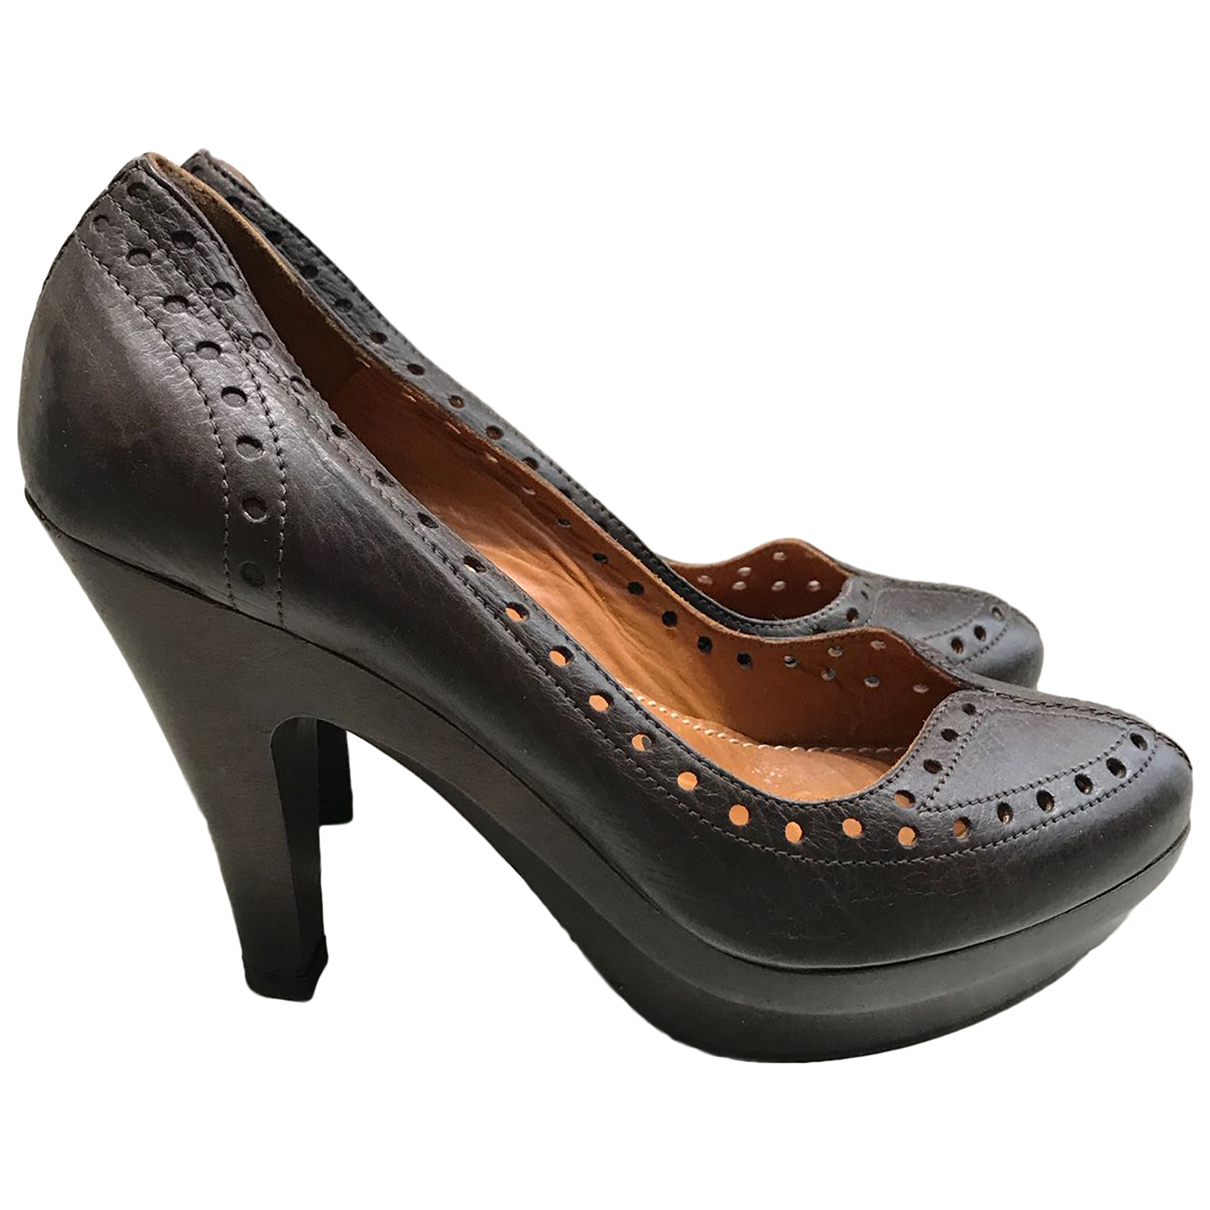 Lanvin \N Pumps in  Braun Leder